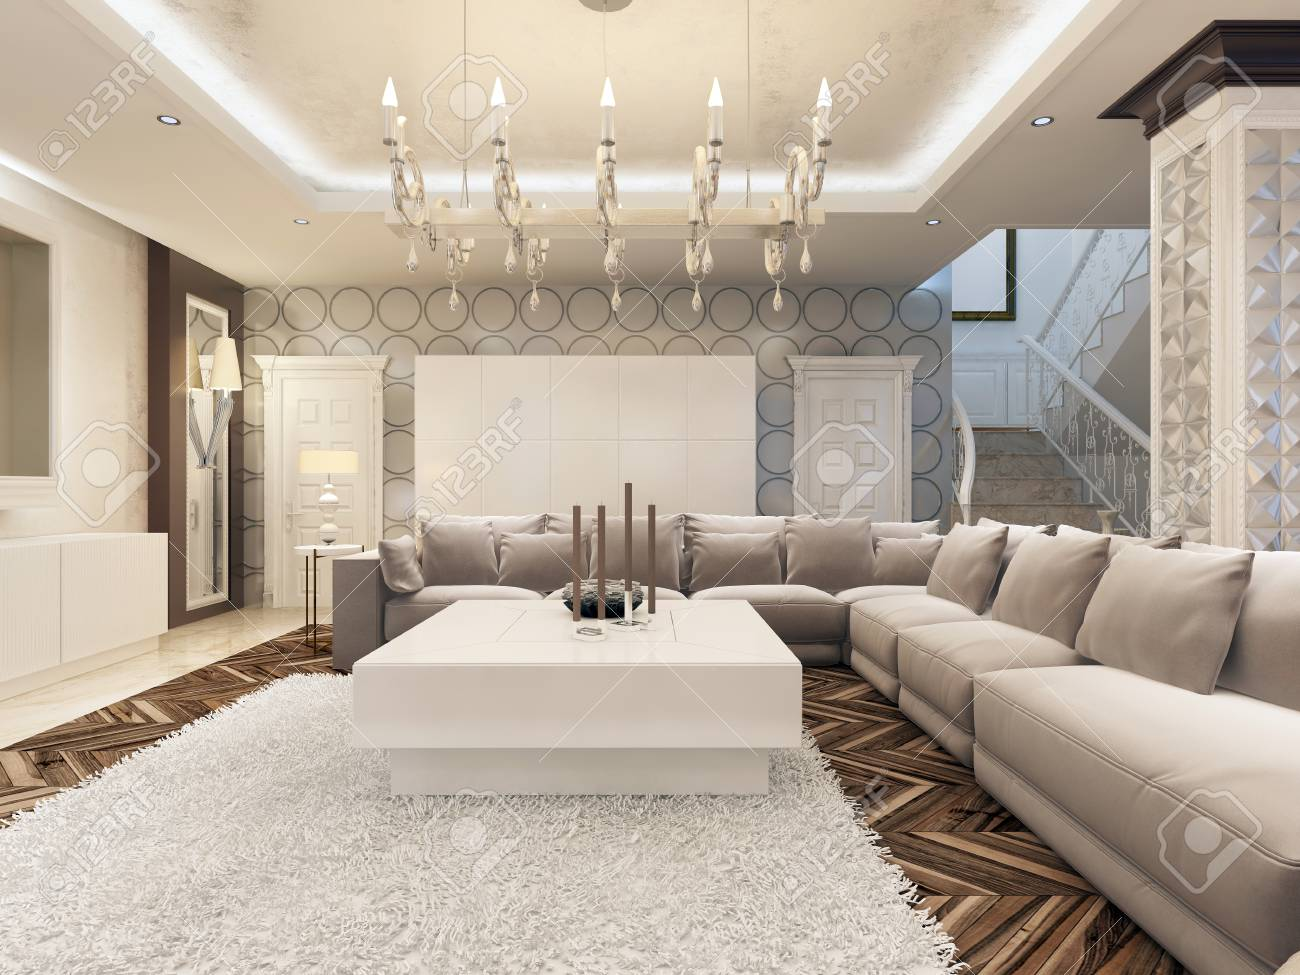 large corner sofa in small living room painting my ideas luxury art deco design bright with and two armchairs 3d